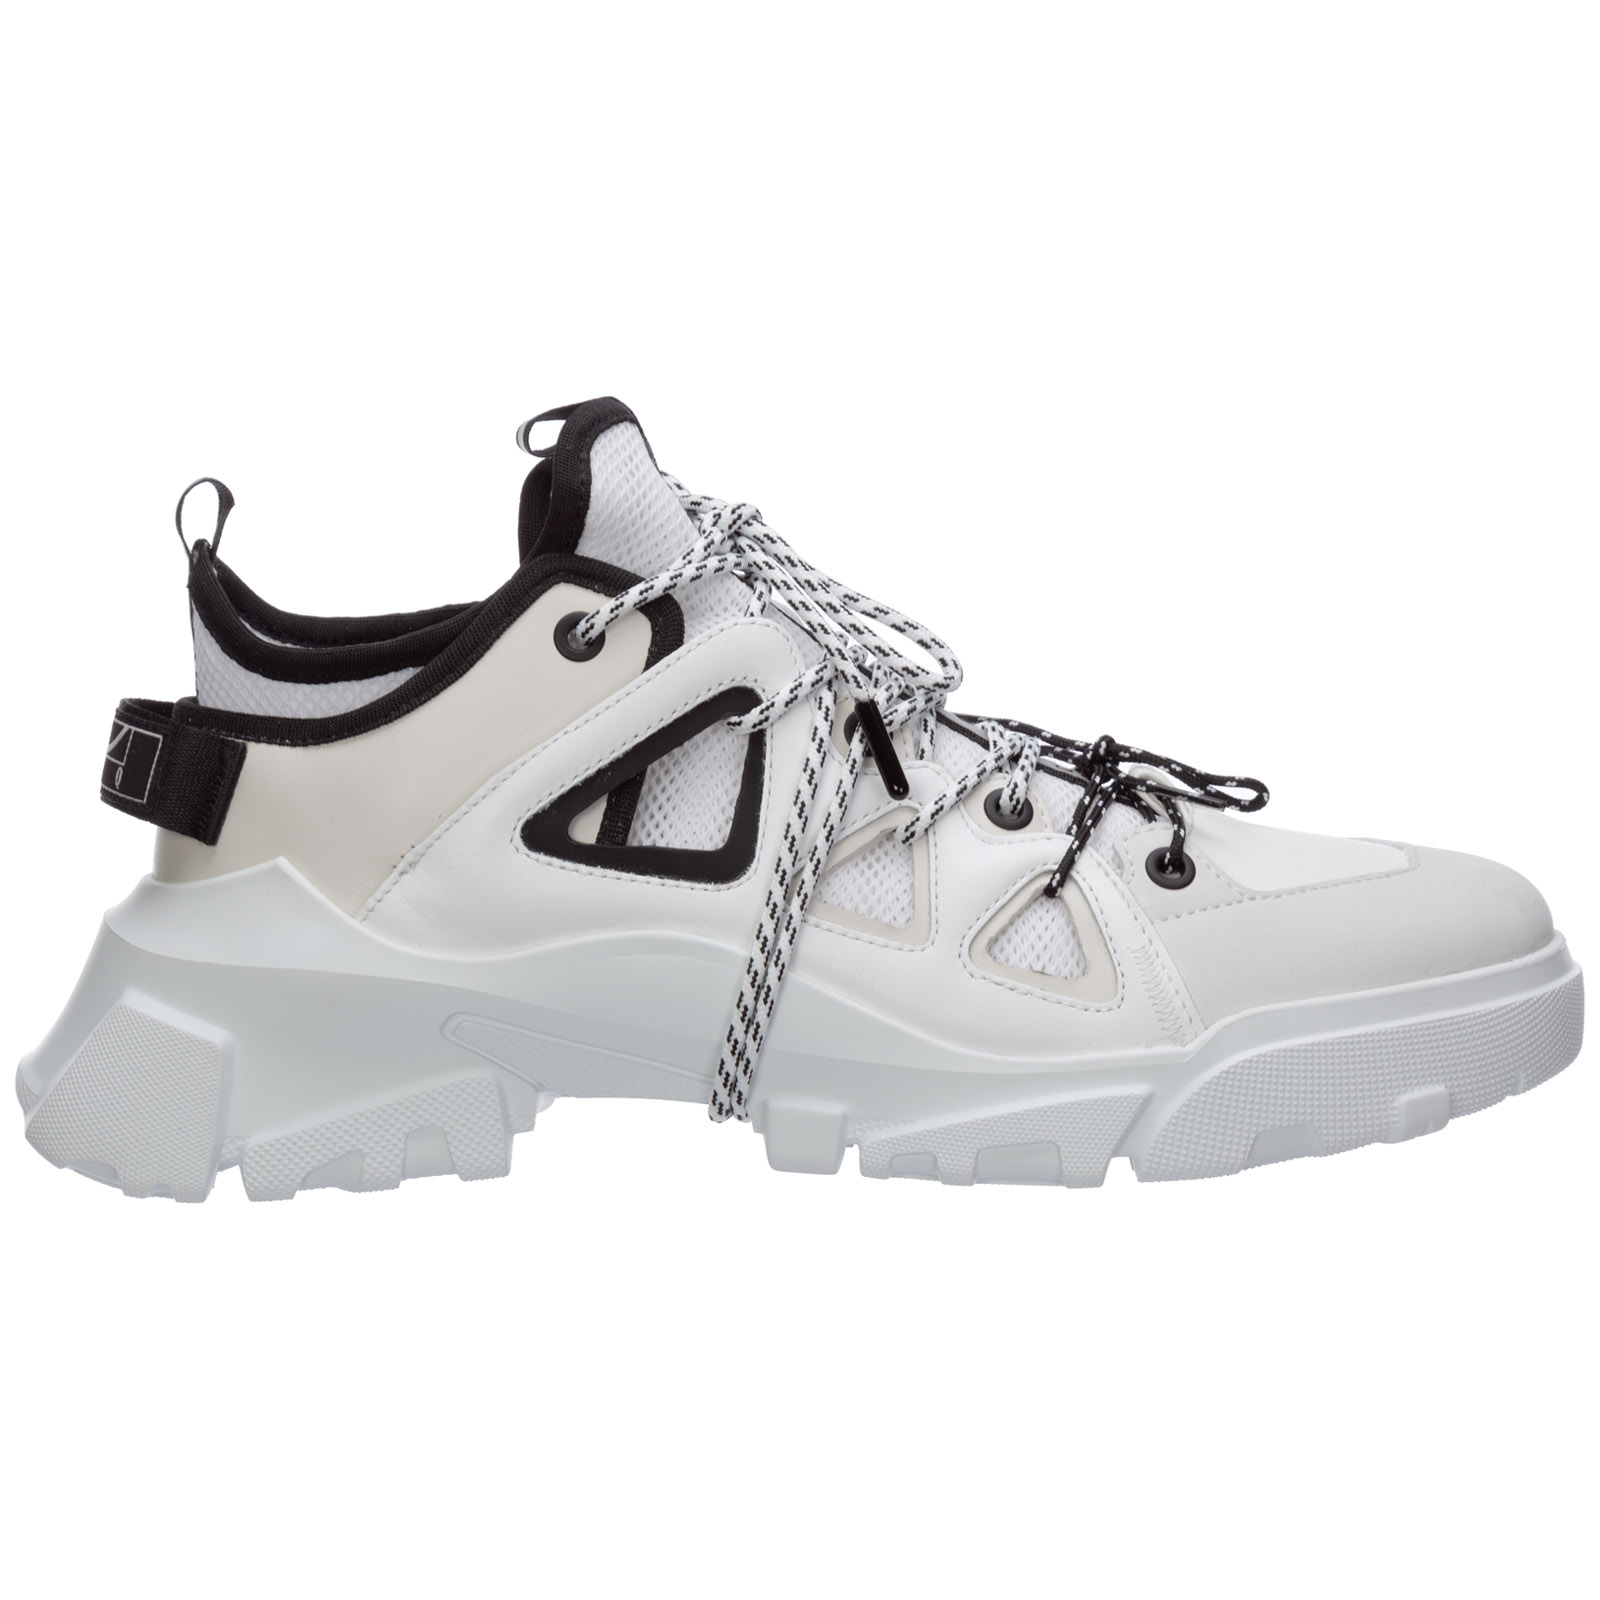 mcq by alexander mcqueen sneakers off